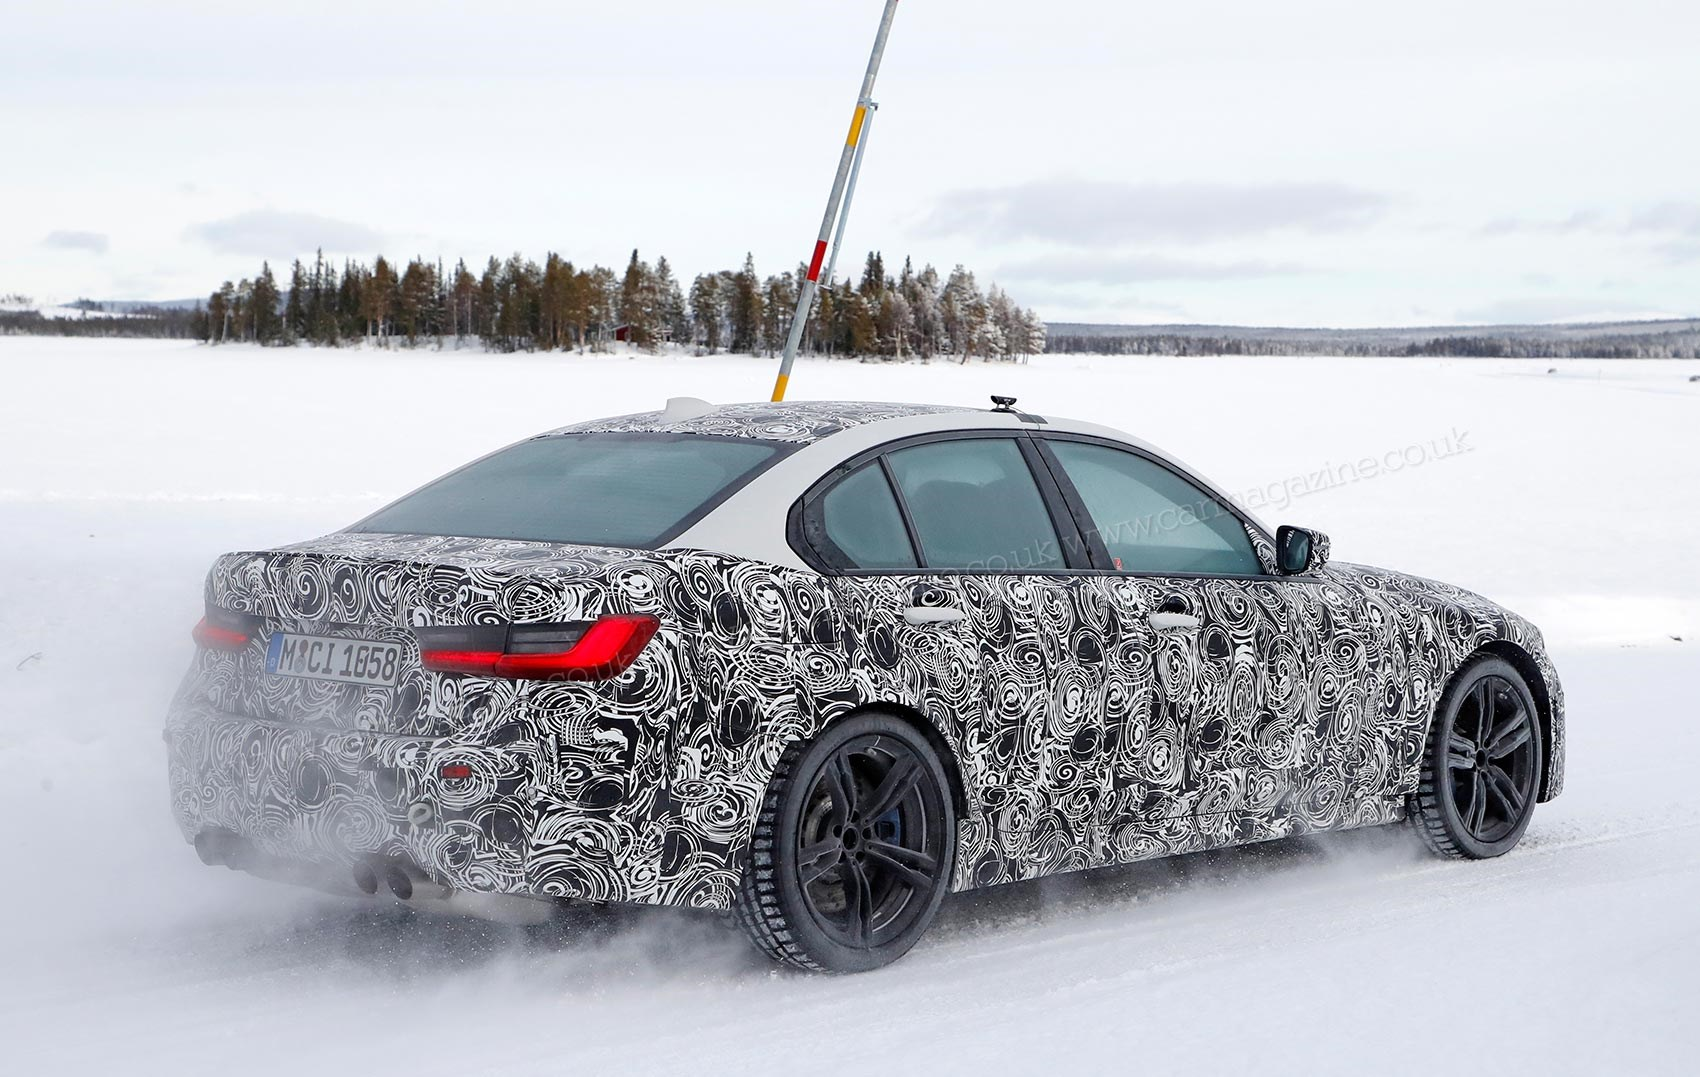 45 Concept of 2020 Bmw M3 Awd Configurations with 2020 Bmw M3 Awd